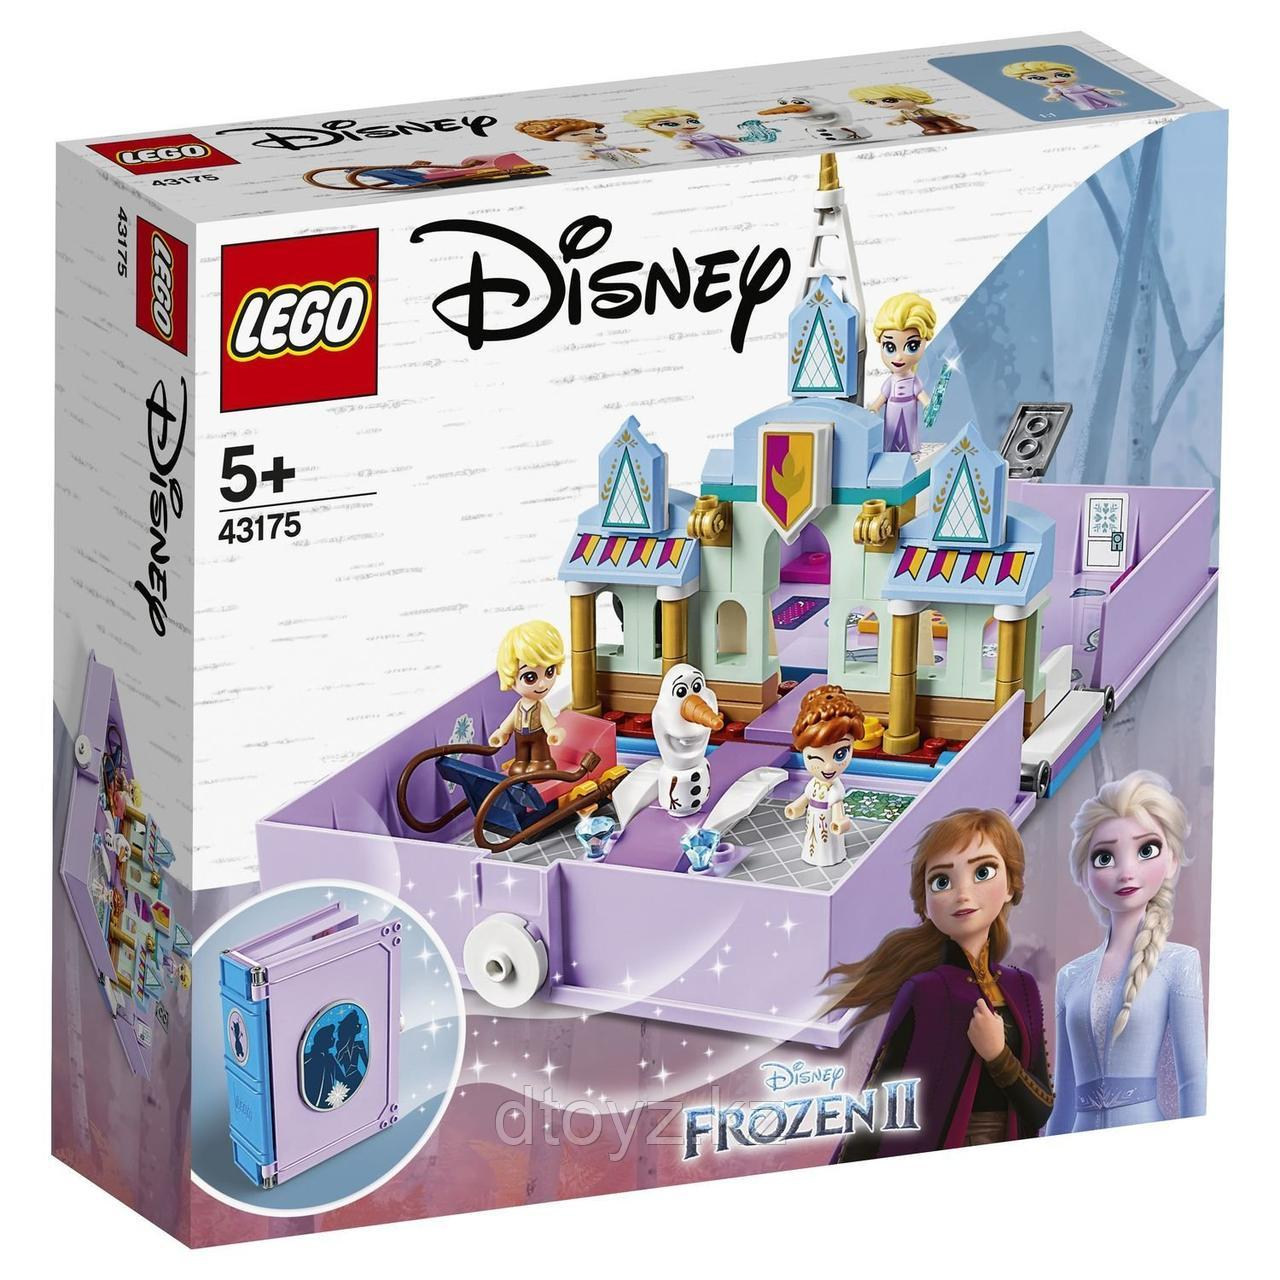 Lego Disney Princess 43175 Книга приключений Анны и Эльзы